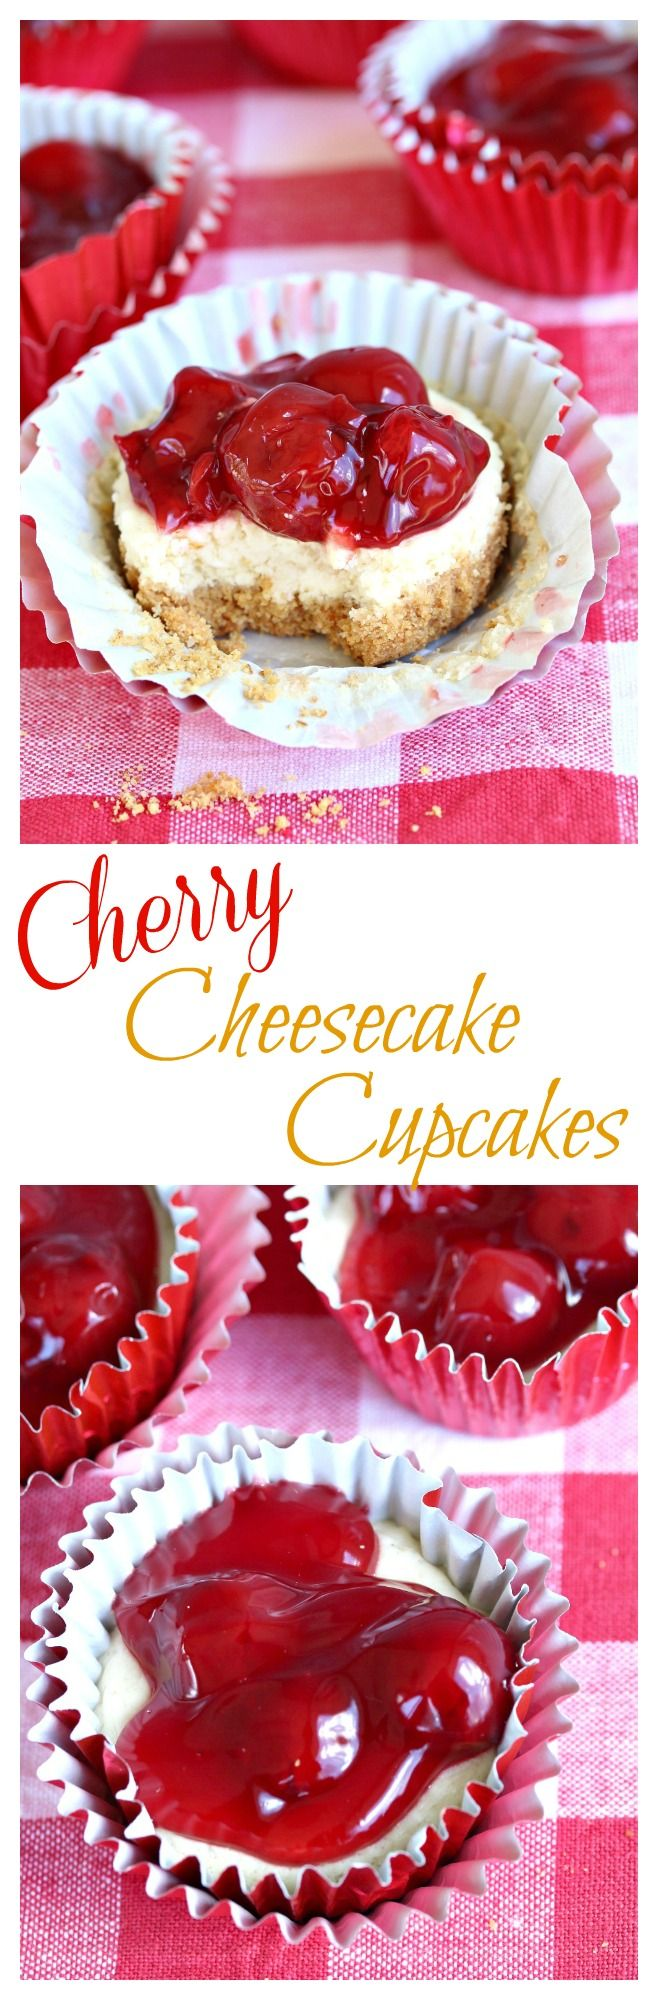 A sweet, buttery crust topped with creamy cheesecake and classic cherries. Ready in 30 minutes start to finish!